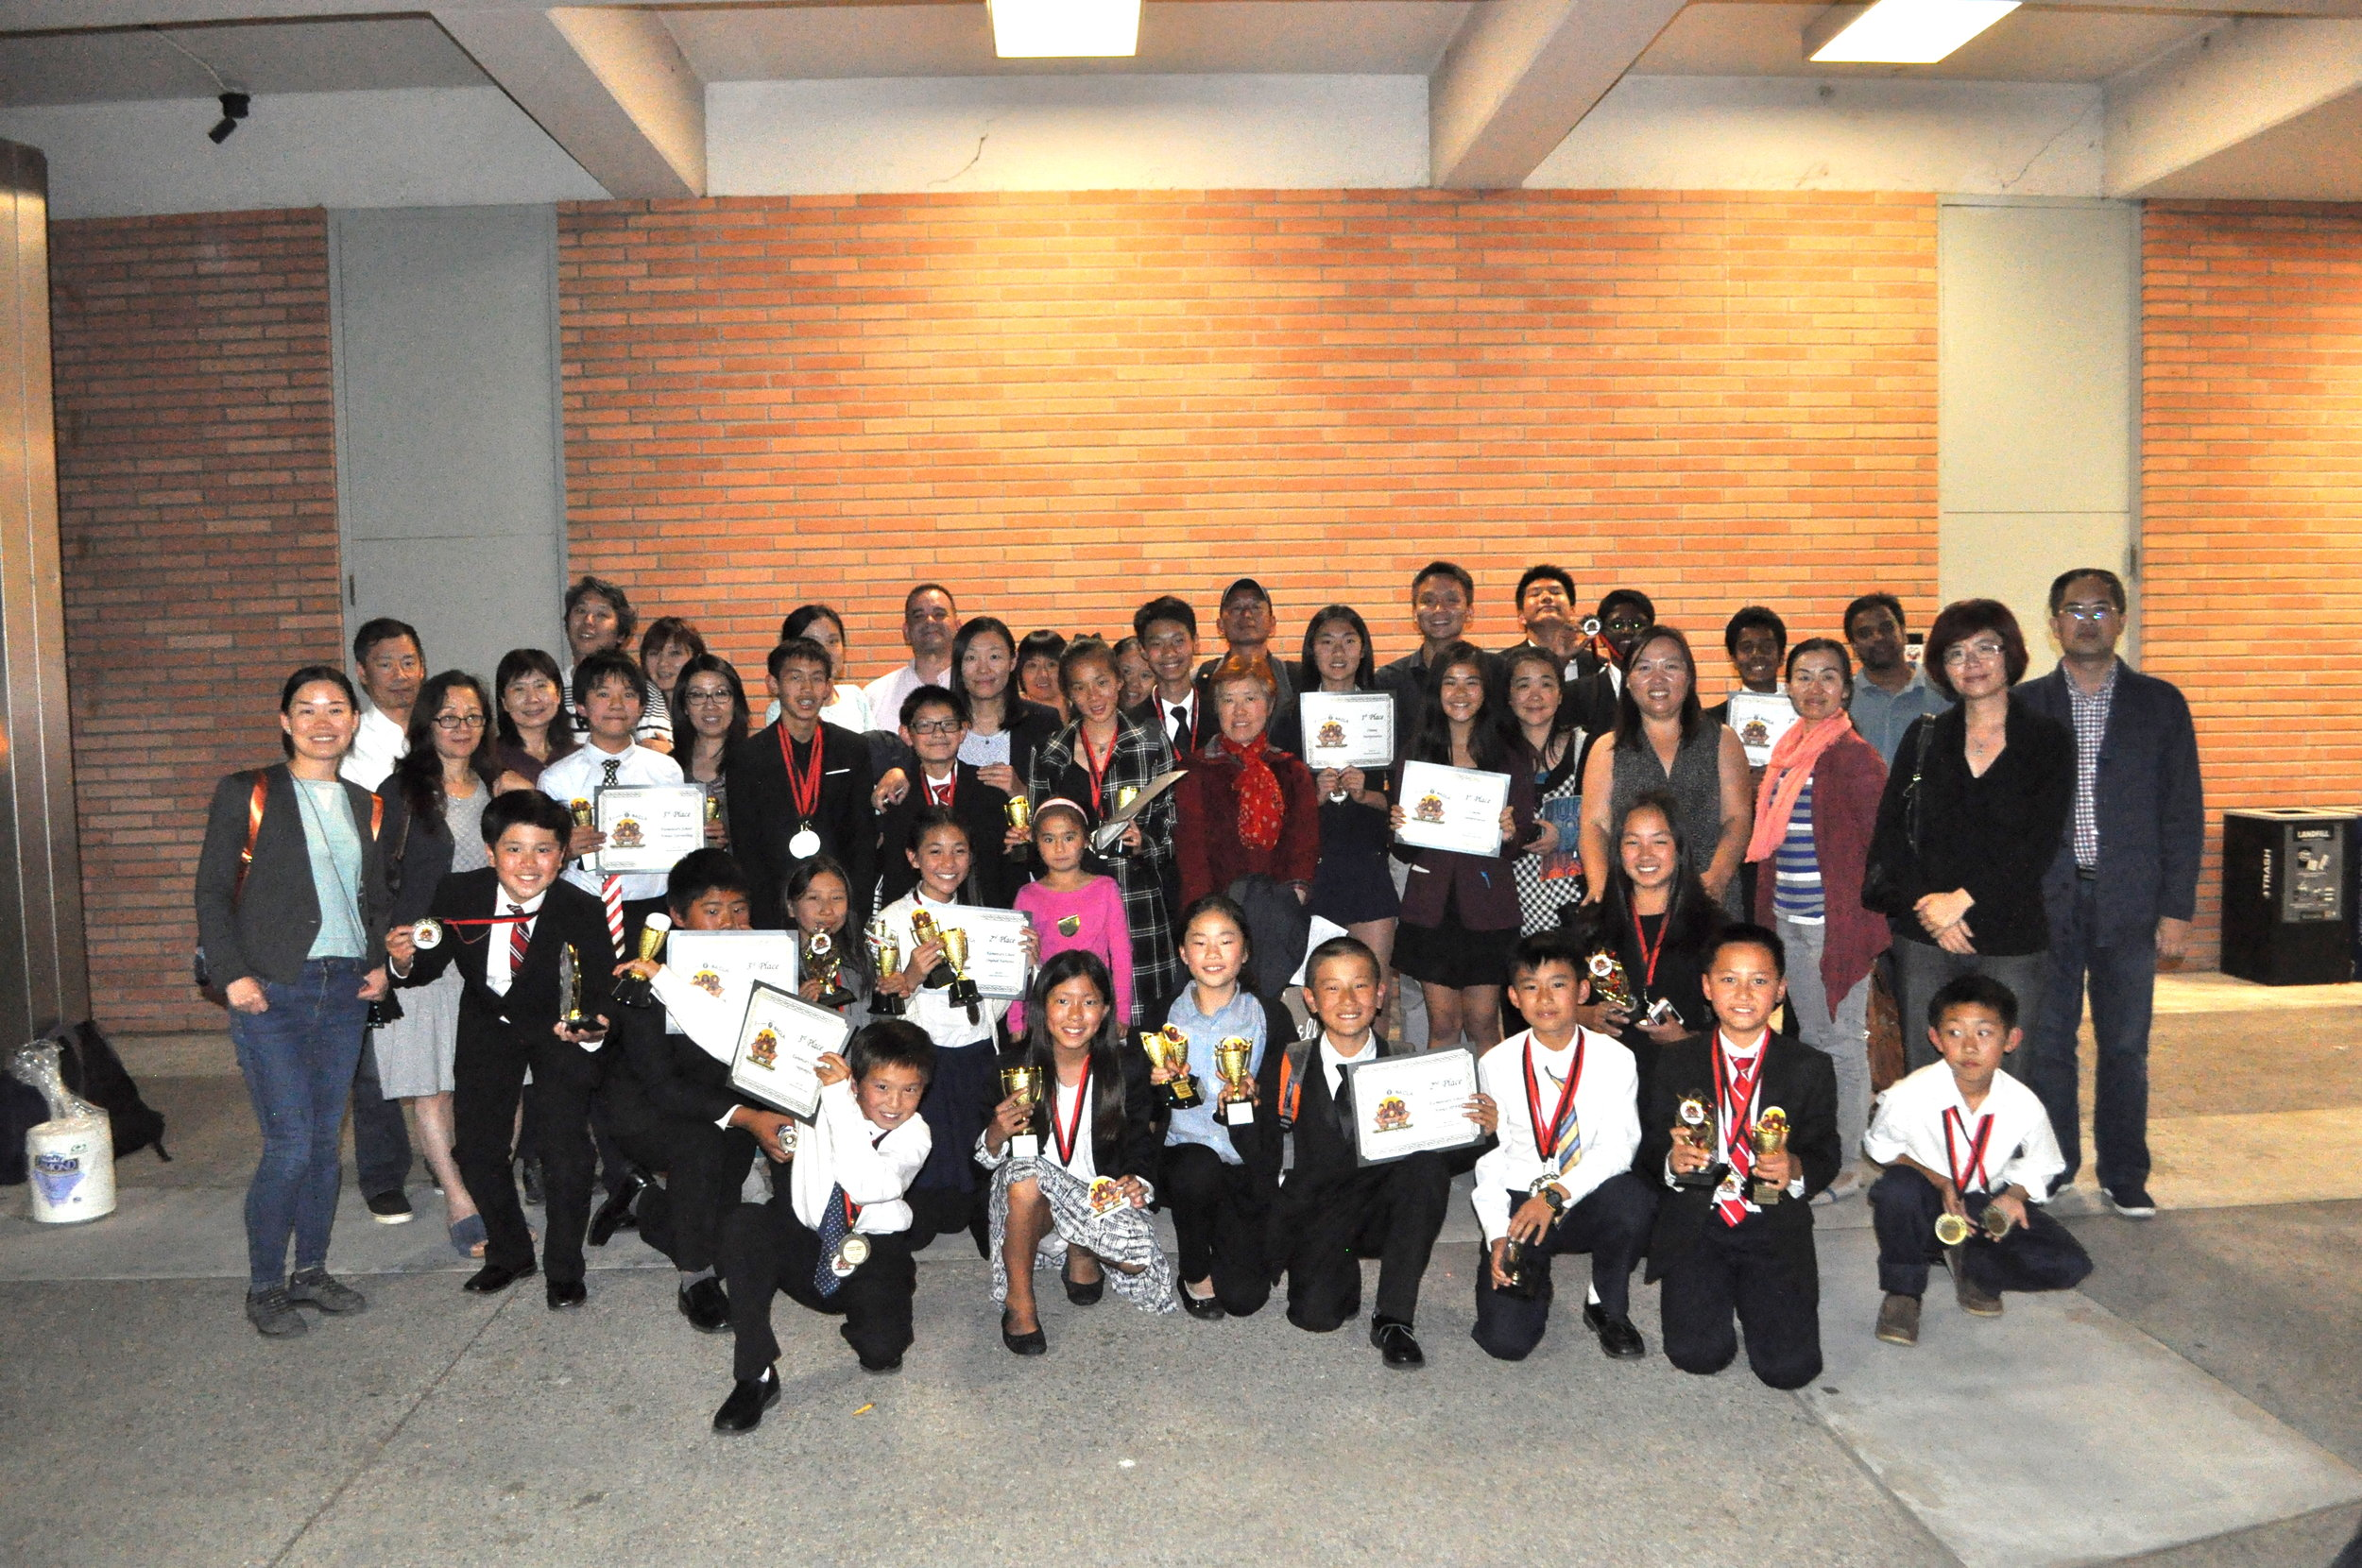 Congratulations to everyone who competed in the May 13th National Communication Arts Championship!  We had an incredibly successful tournament. We won more than 80 medals, which is more than the next 4 teams combined! We won at every age level - elementary, middle, and high school. We won in every type of event - writing, film, limited preparation, memorized speech, interp (acting), and debate! No other team accomplished this. We are only team to train students to be well rounded and excellent across all speech events. Not only did we win with our experienced competitors, our first time and ESL students also won!